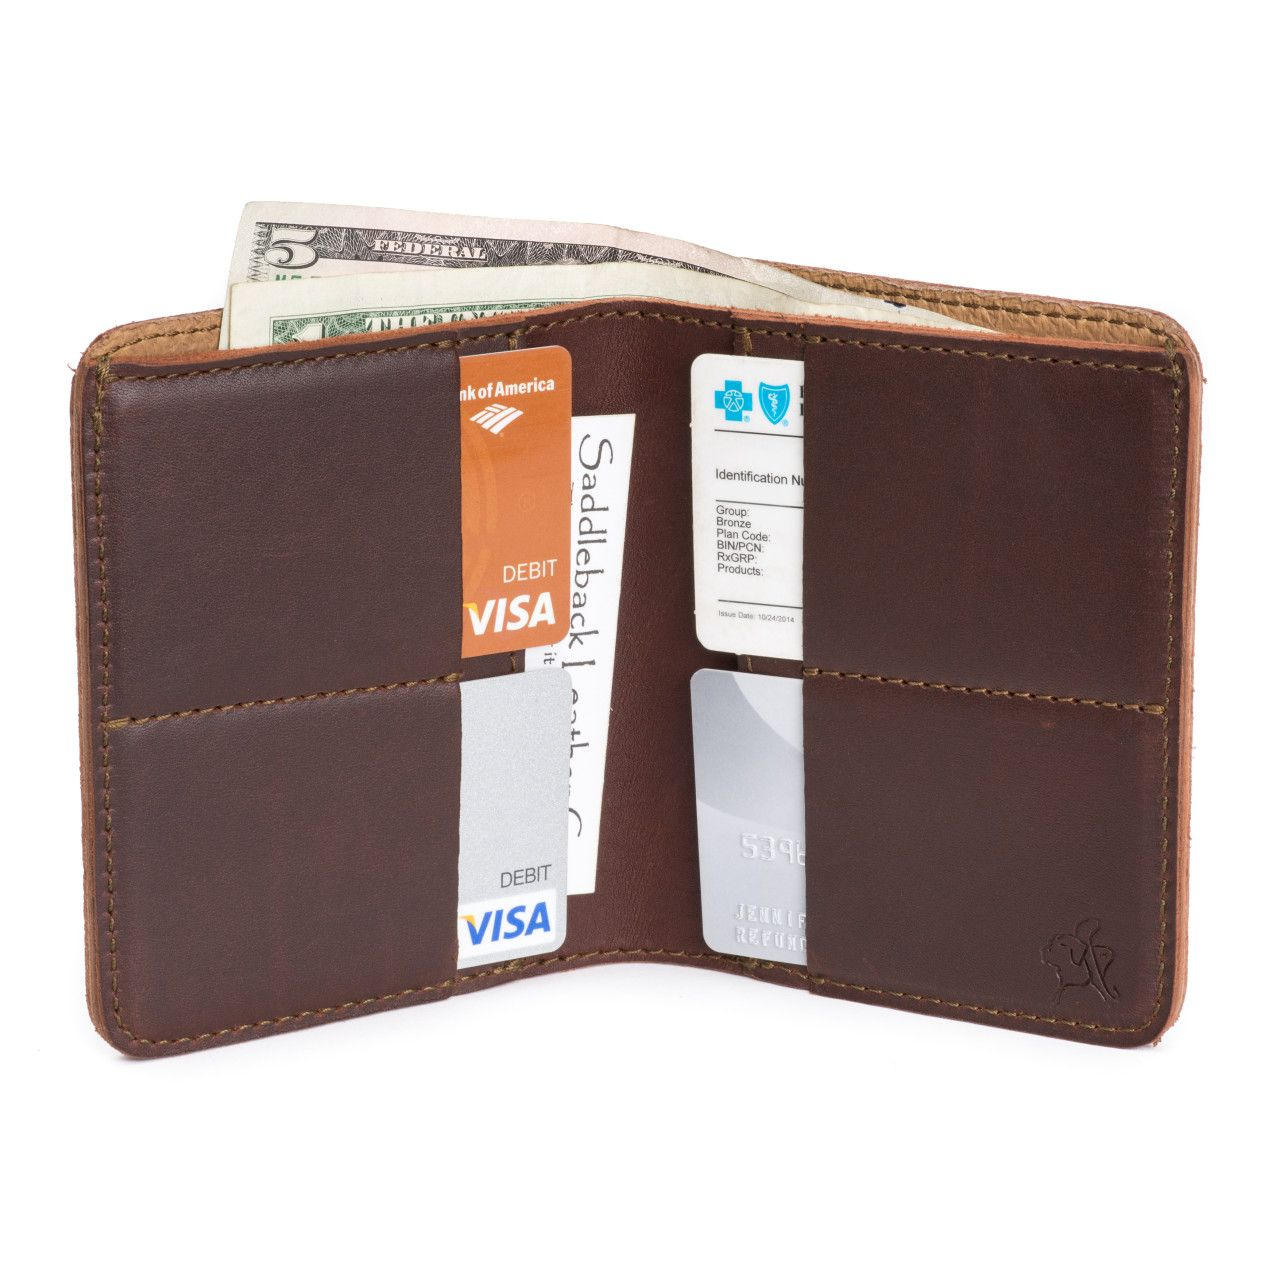 large leather bifold wallet large in chestnut leather with money, credit cards, business cards